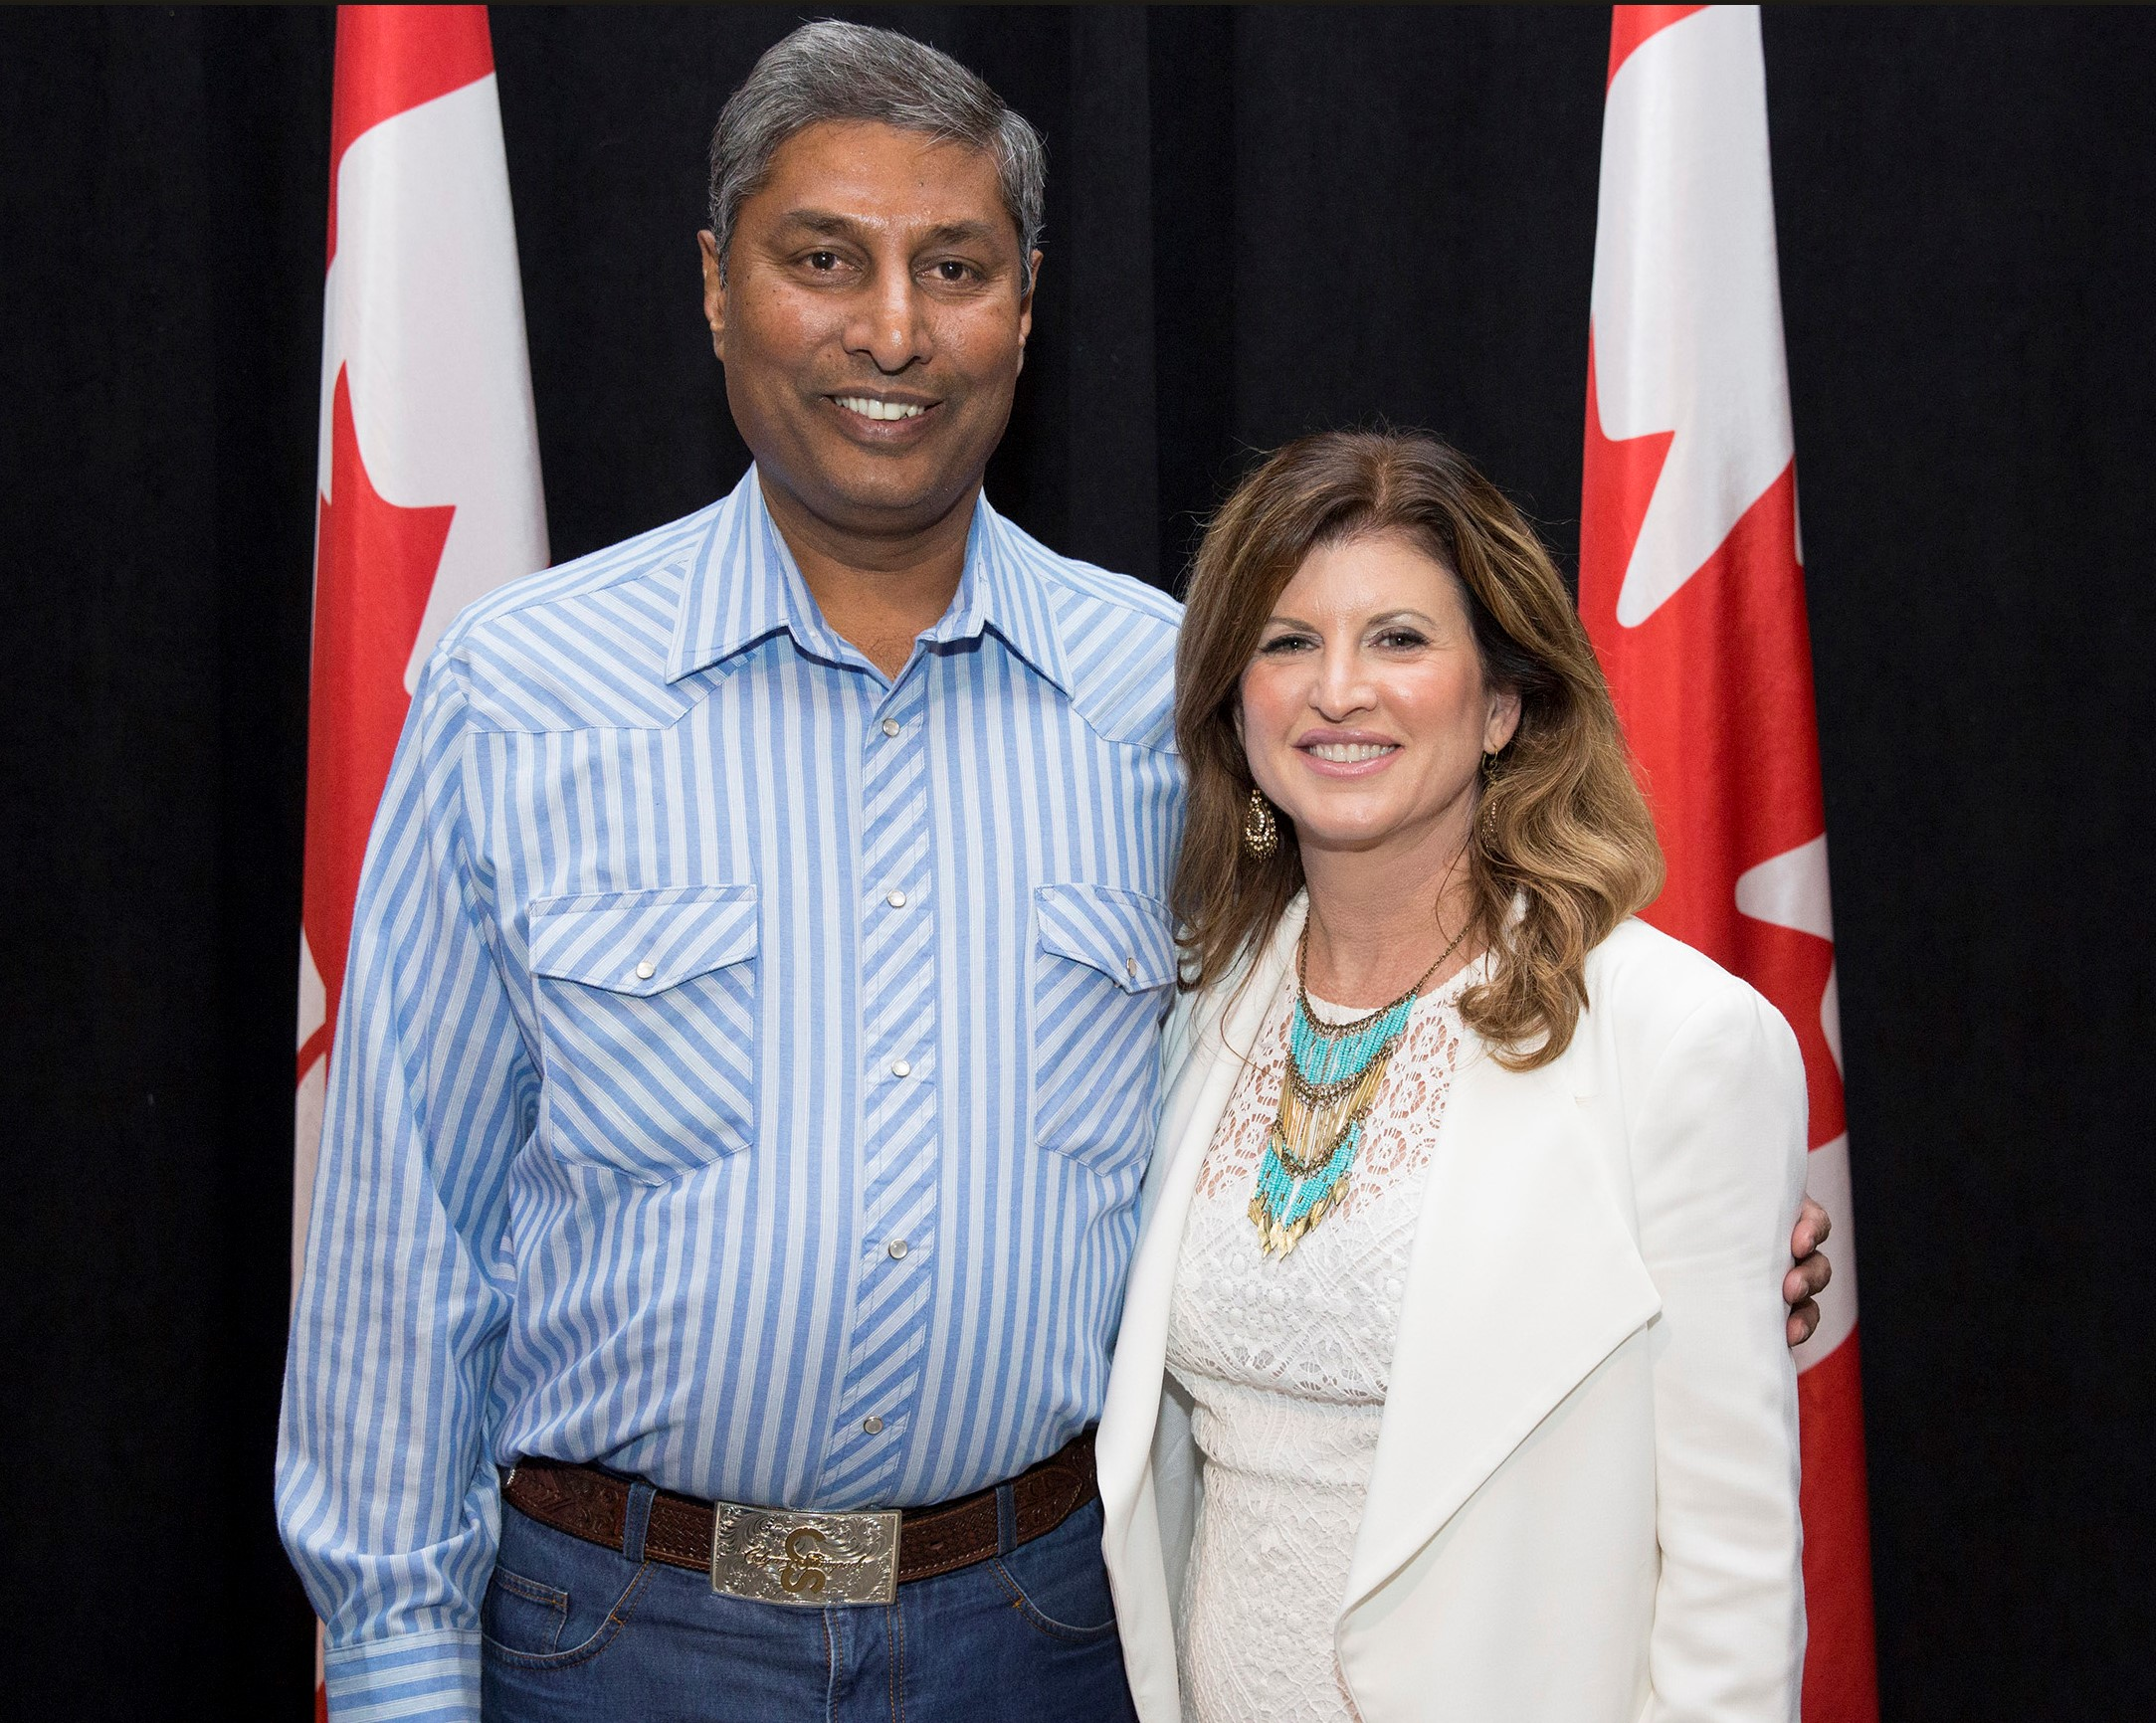 https://d3n8a8pro7vhmx.cloudfront.net/prasadpanda/pages/13/features/original/With_Rona_Ambrose_at_the_Stampede_Barbecue.jpg?1525822656